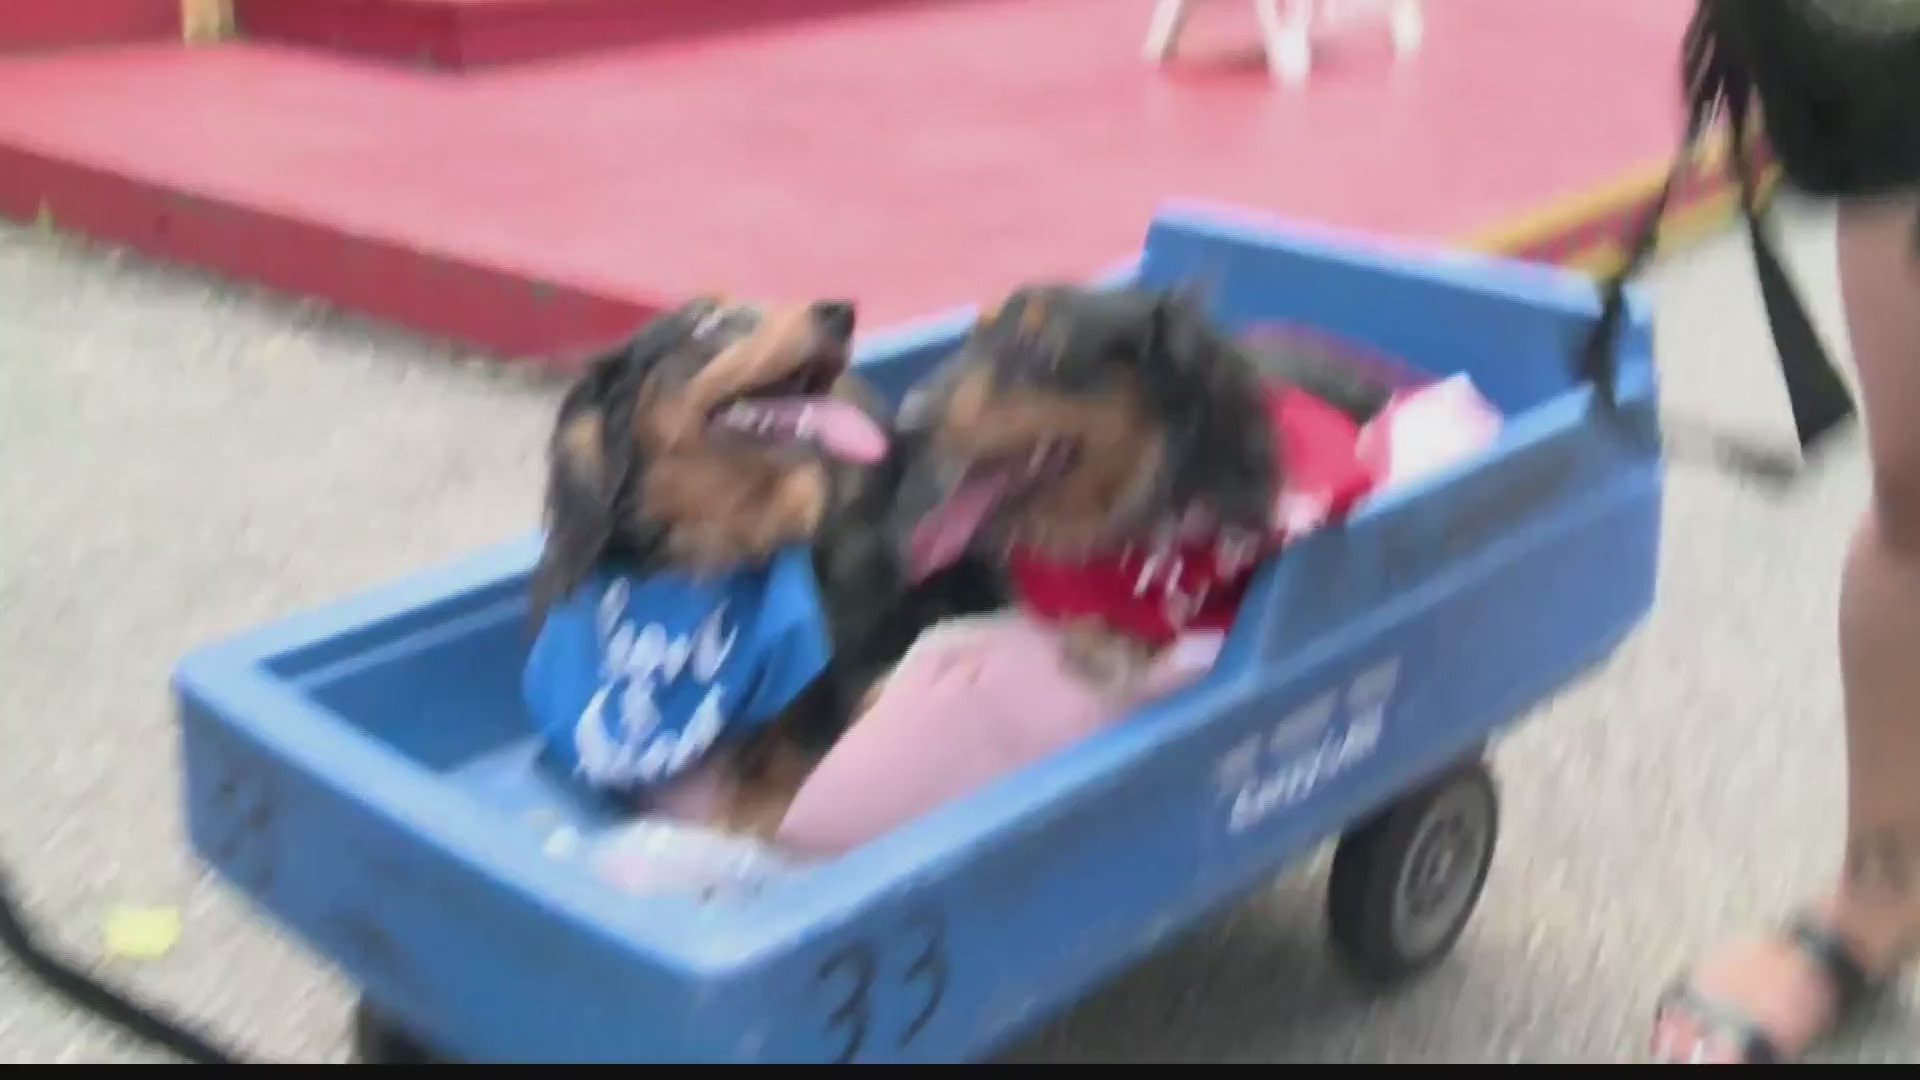 """Dogs compete in """"Weiner 100 Dachshund race"""" at Kennywood Park 